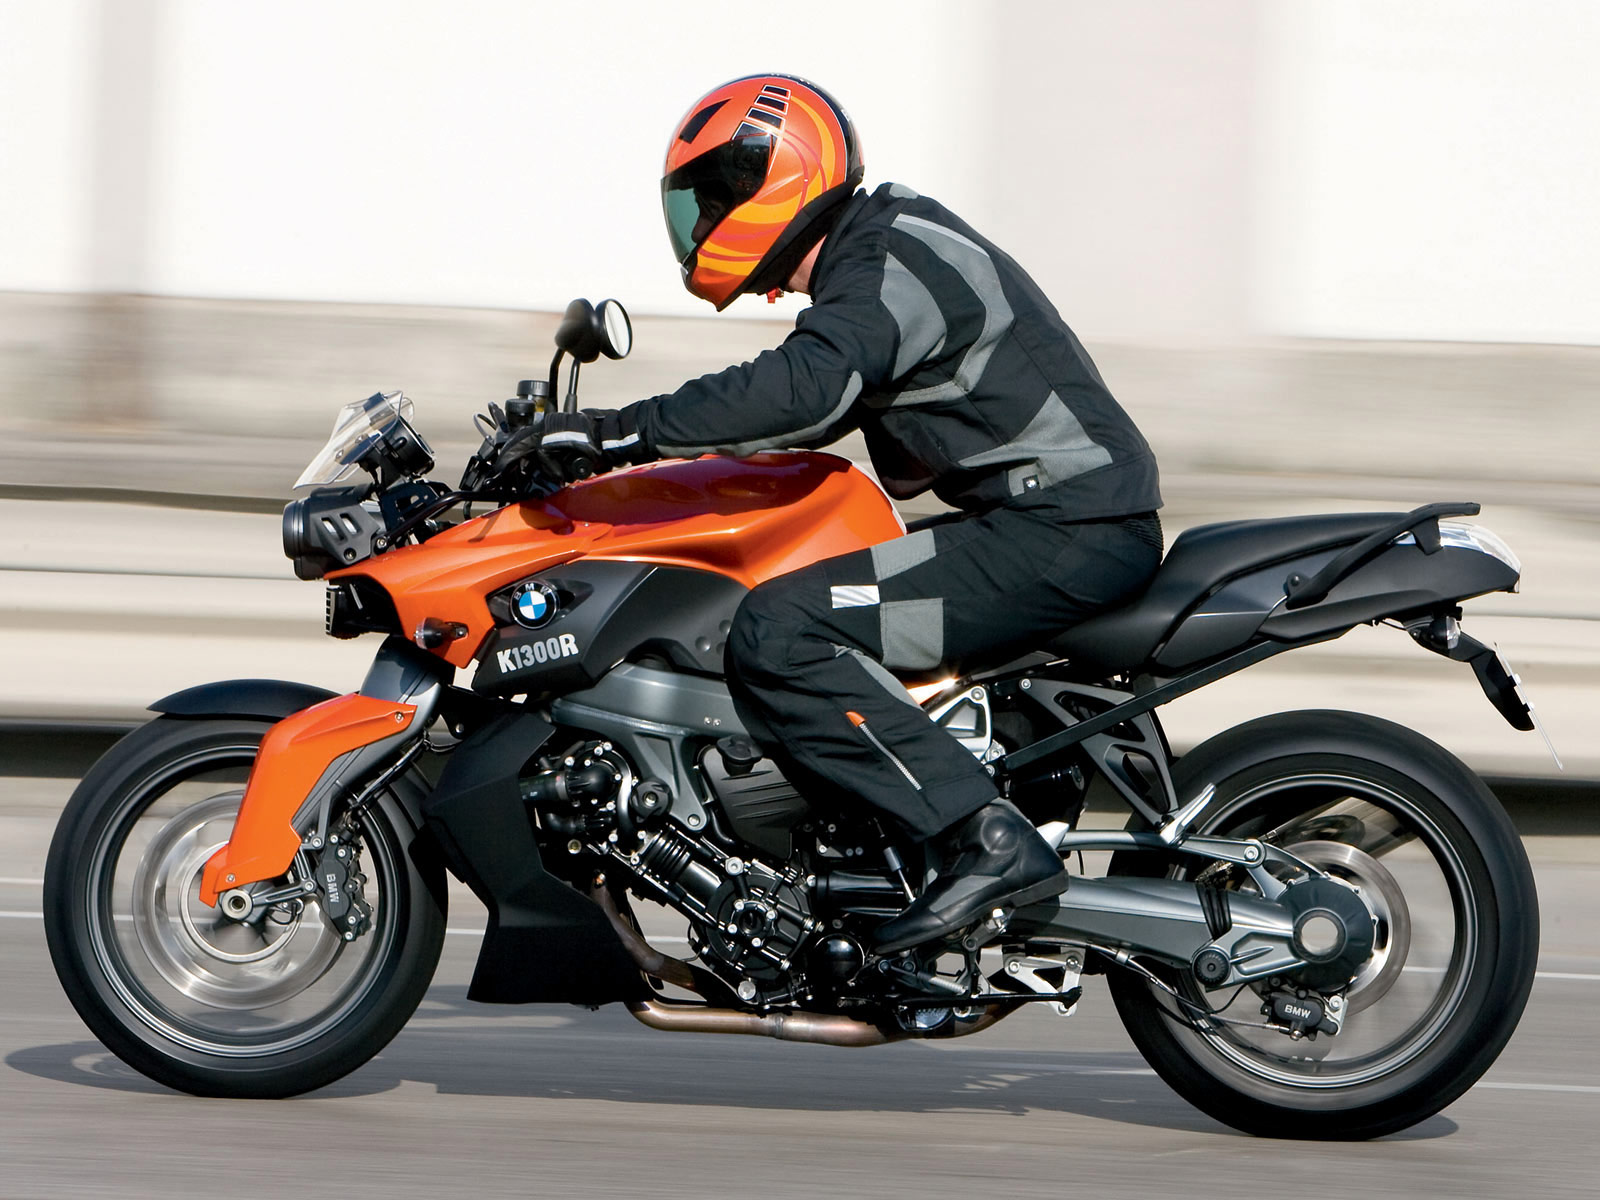 BMW K1200R Wallpaper BMW Motorcycles (51 Wallpapers